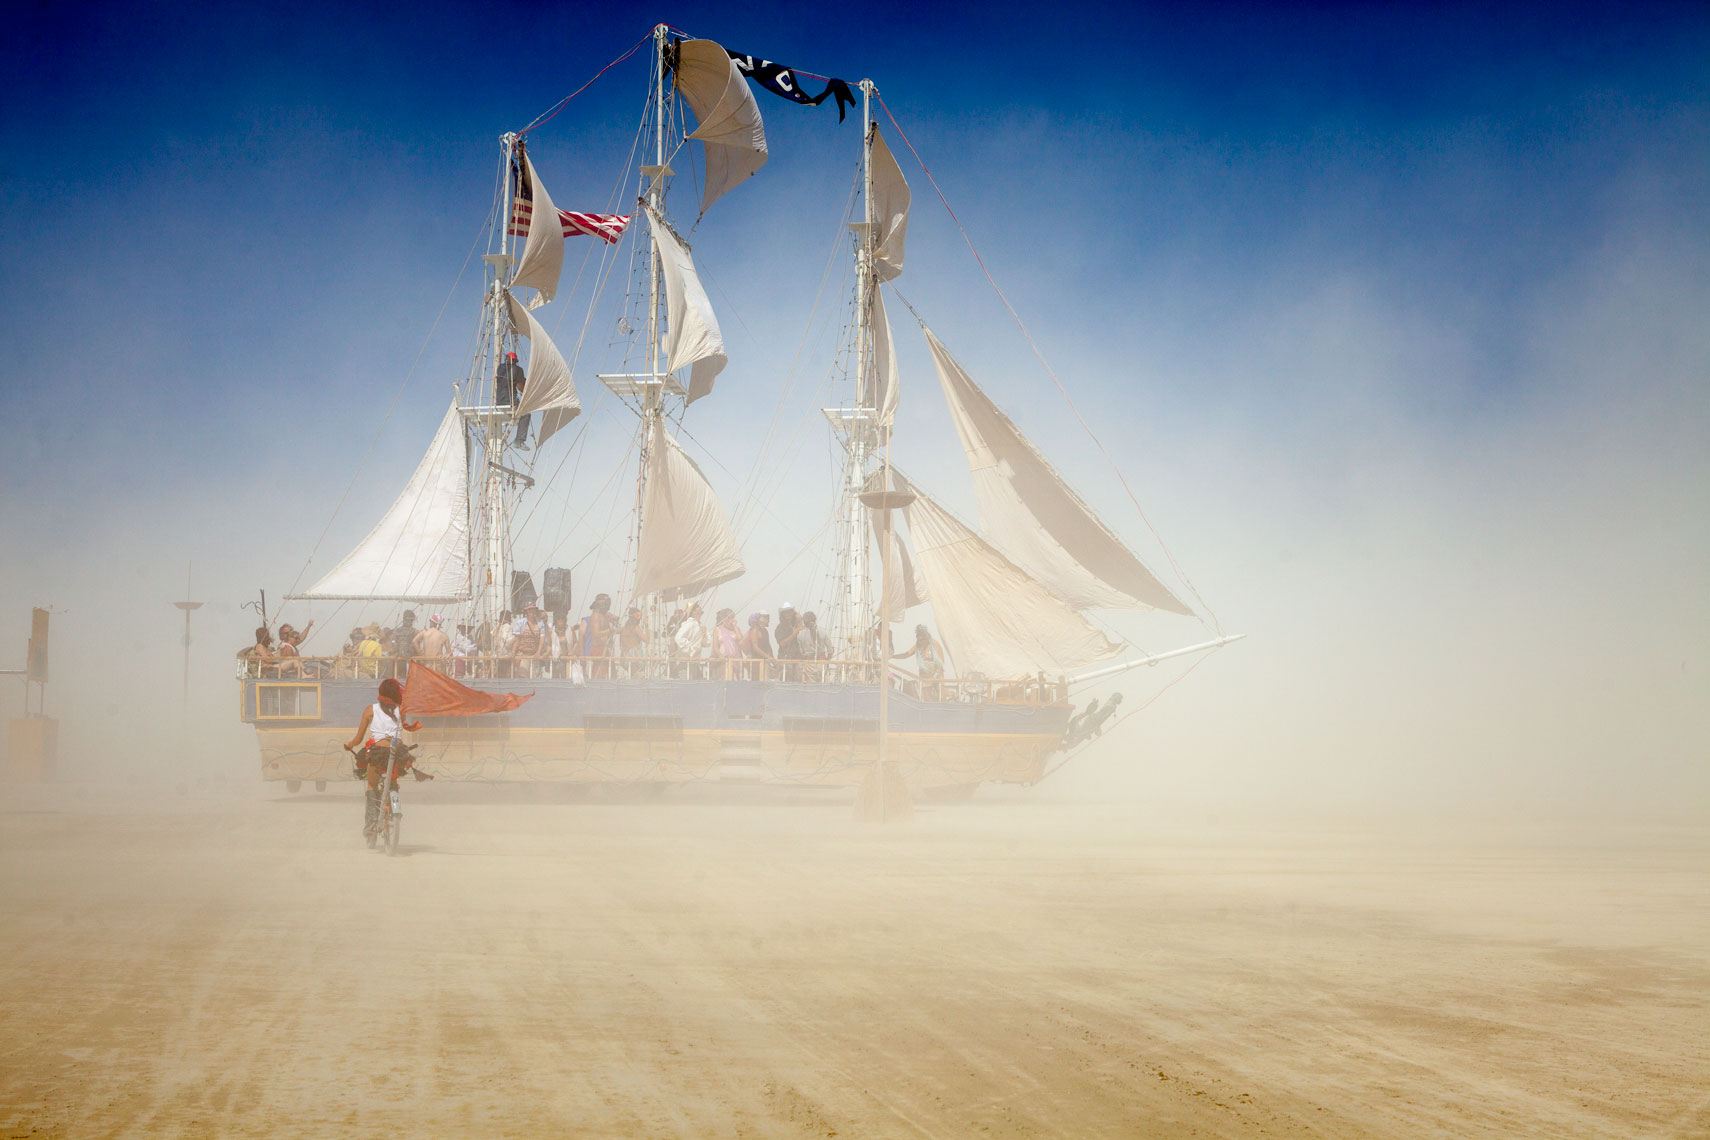 Burning Man Playa Schooner